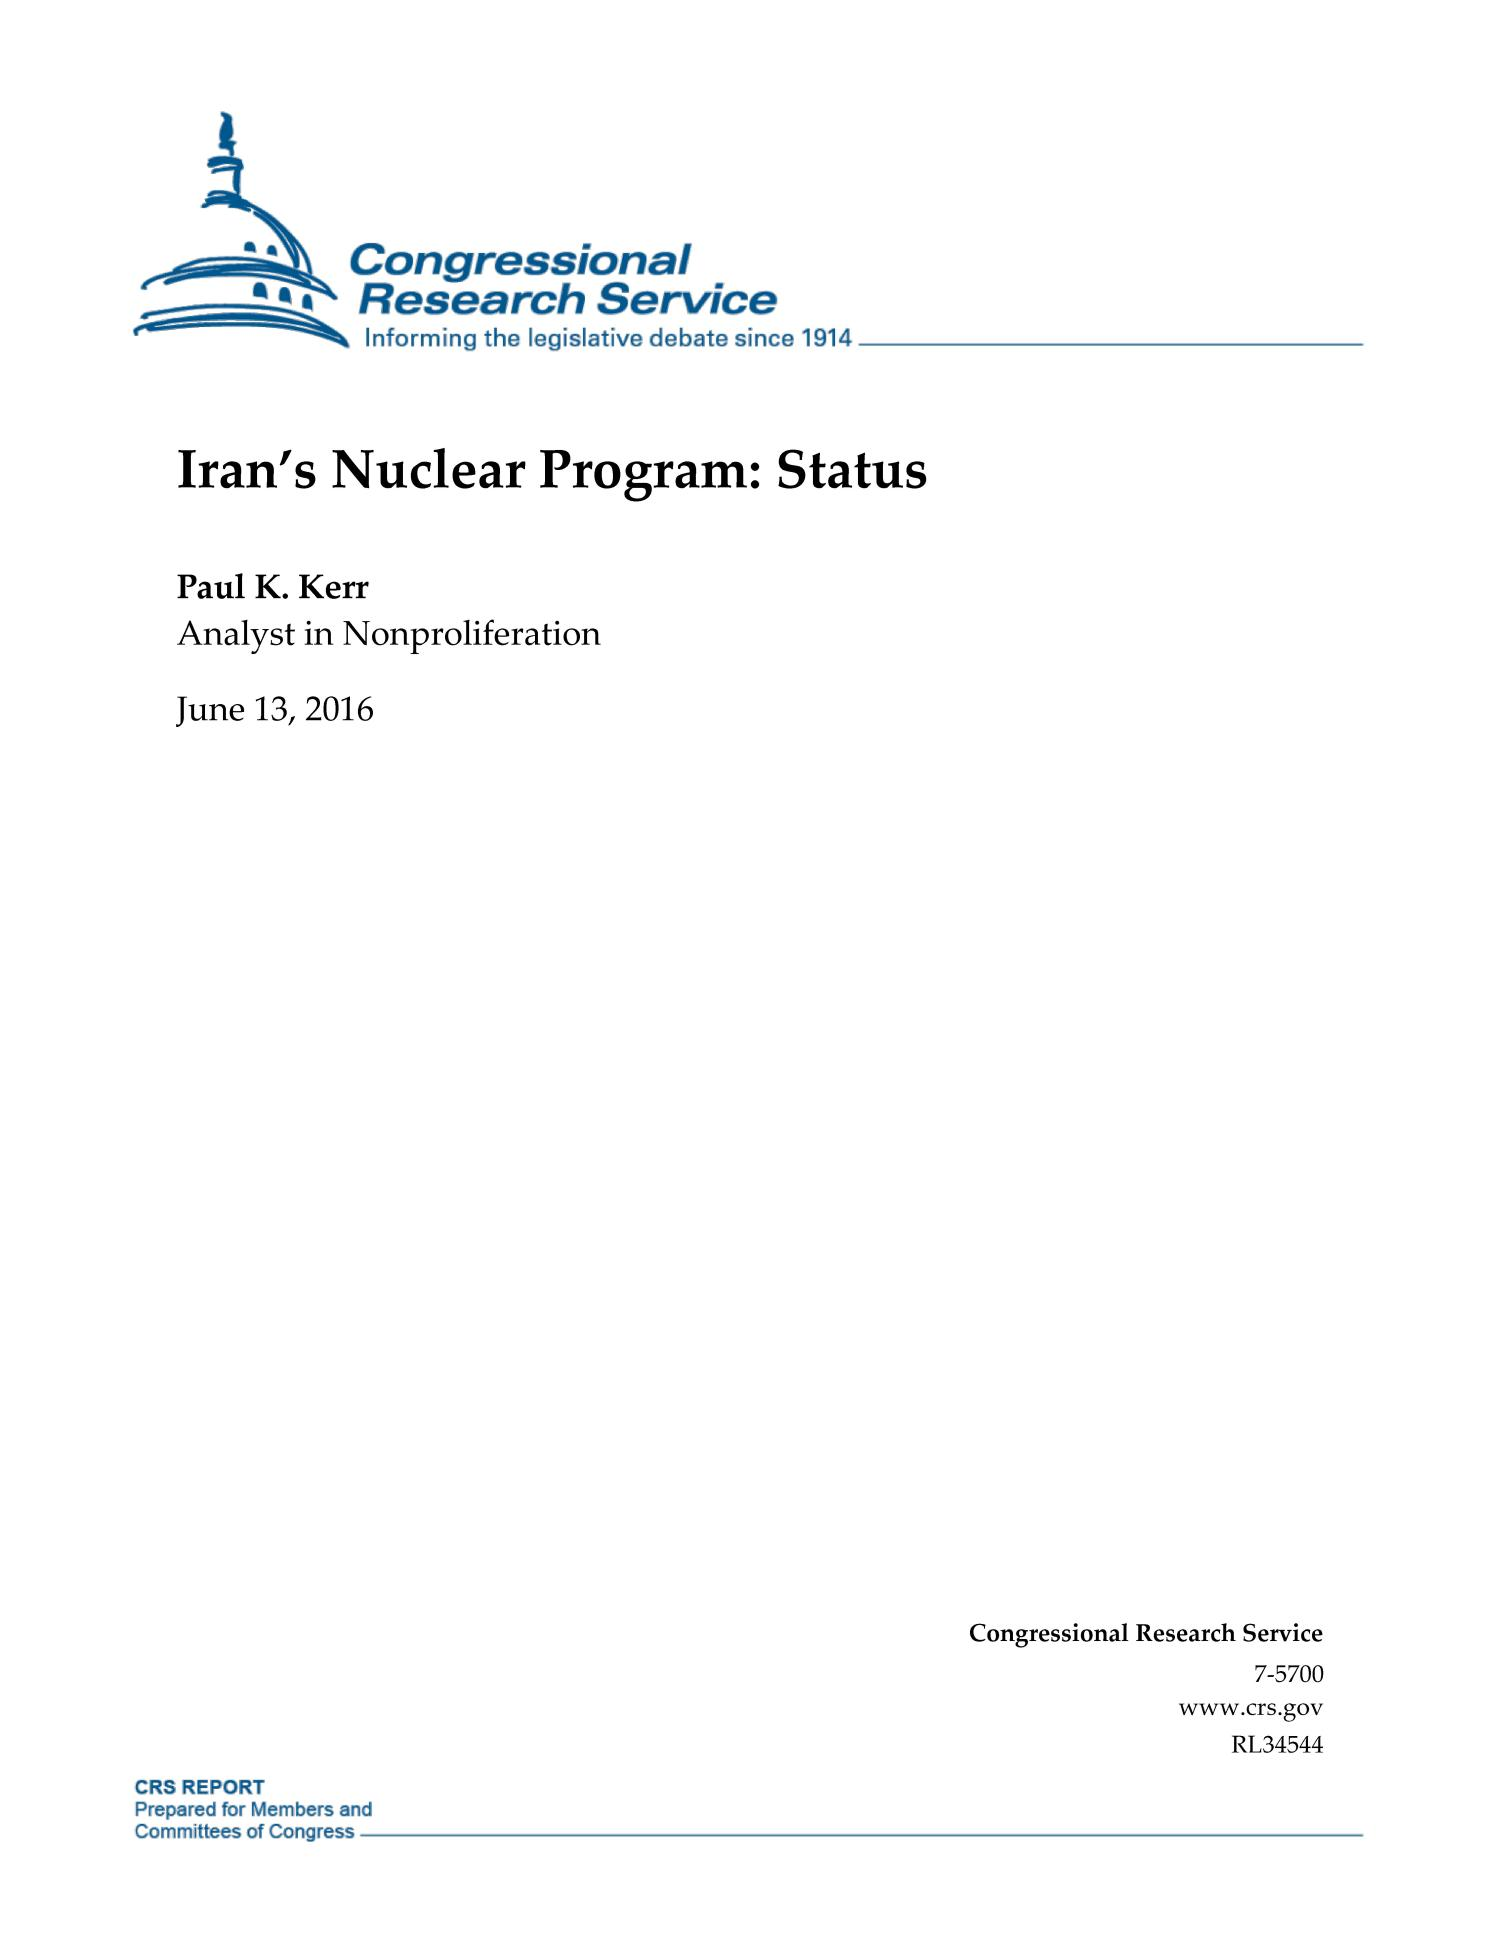 Iran's Nuclear Program: Status                                                                                                      [Sequence #]: 1 of 62